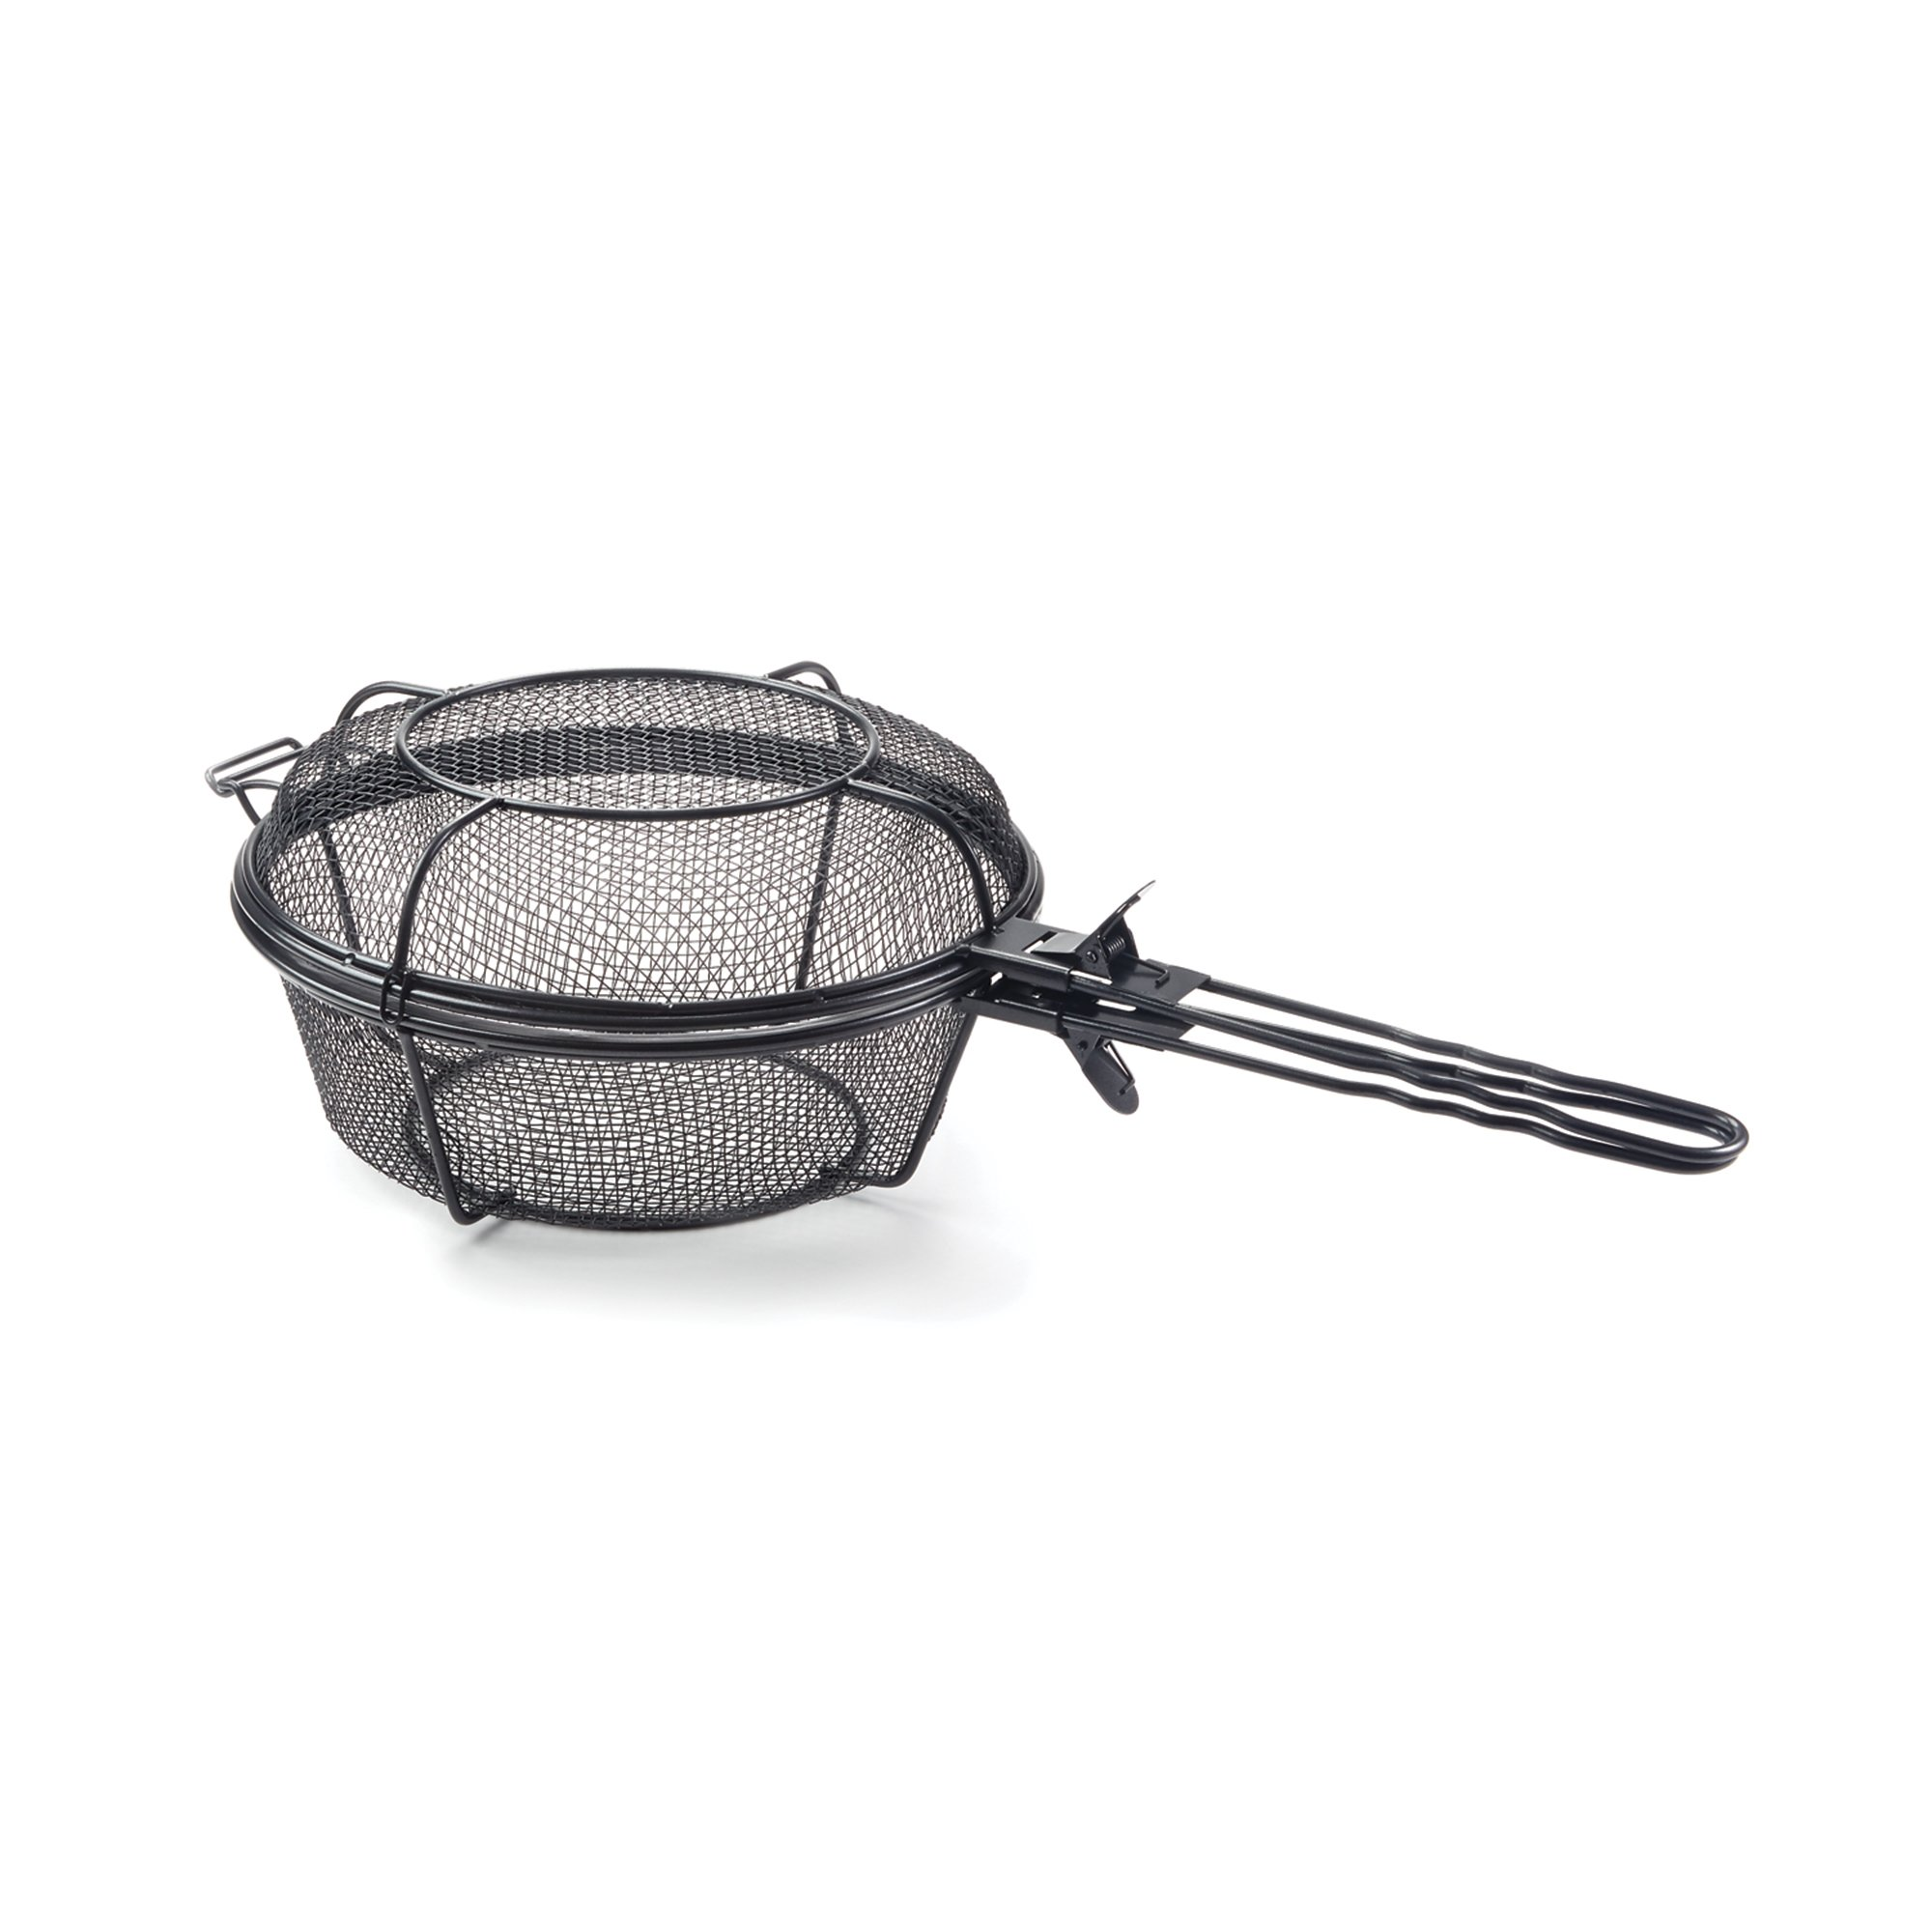 Outset 76182 Chef's Jumbo Outdoor Grill Basket and Skillet with Removable Handles by Outset